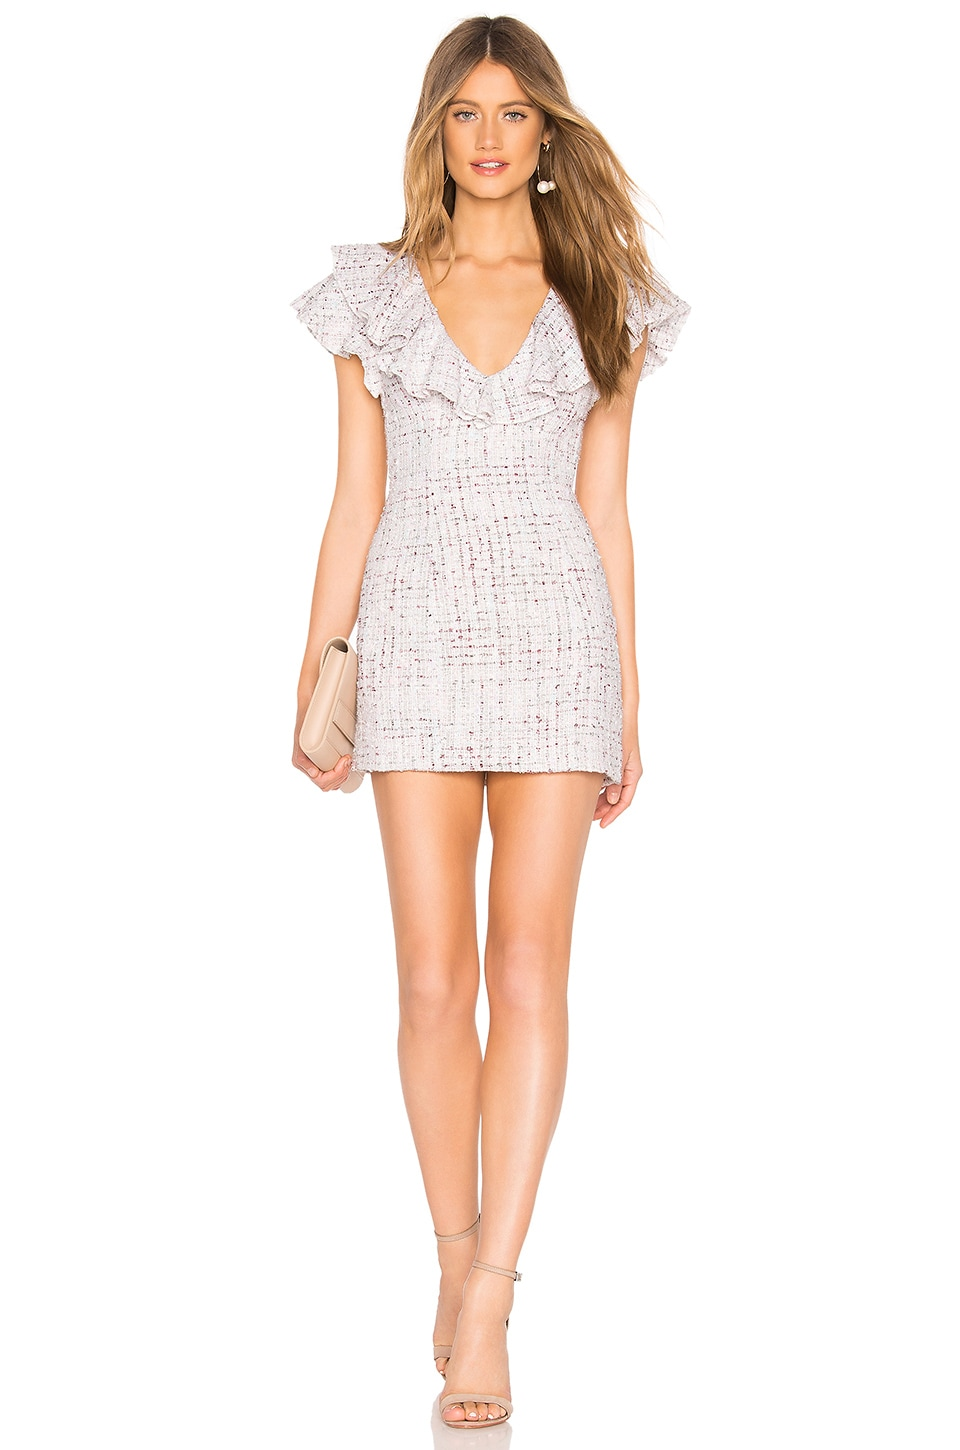 MAJORELLE Marlow Mini Dress in Pastel Multi